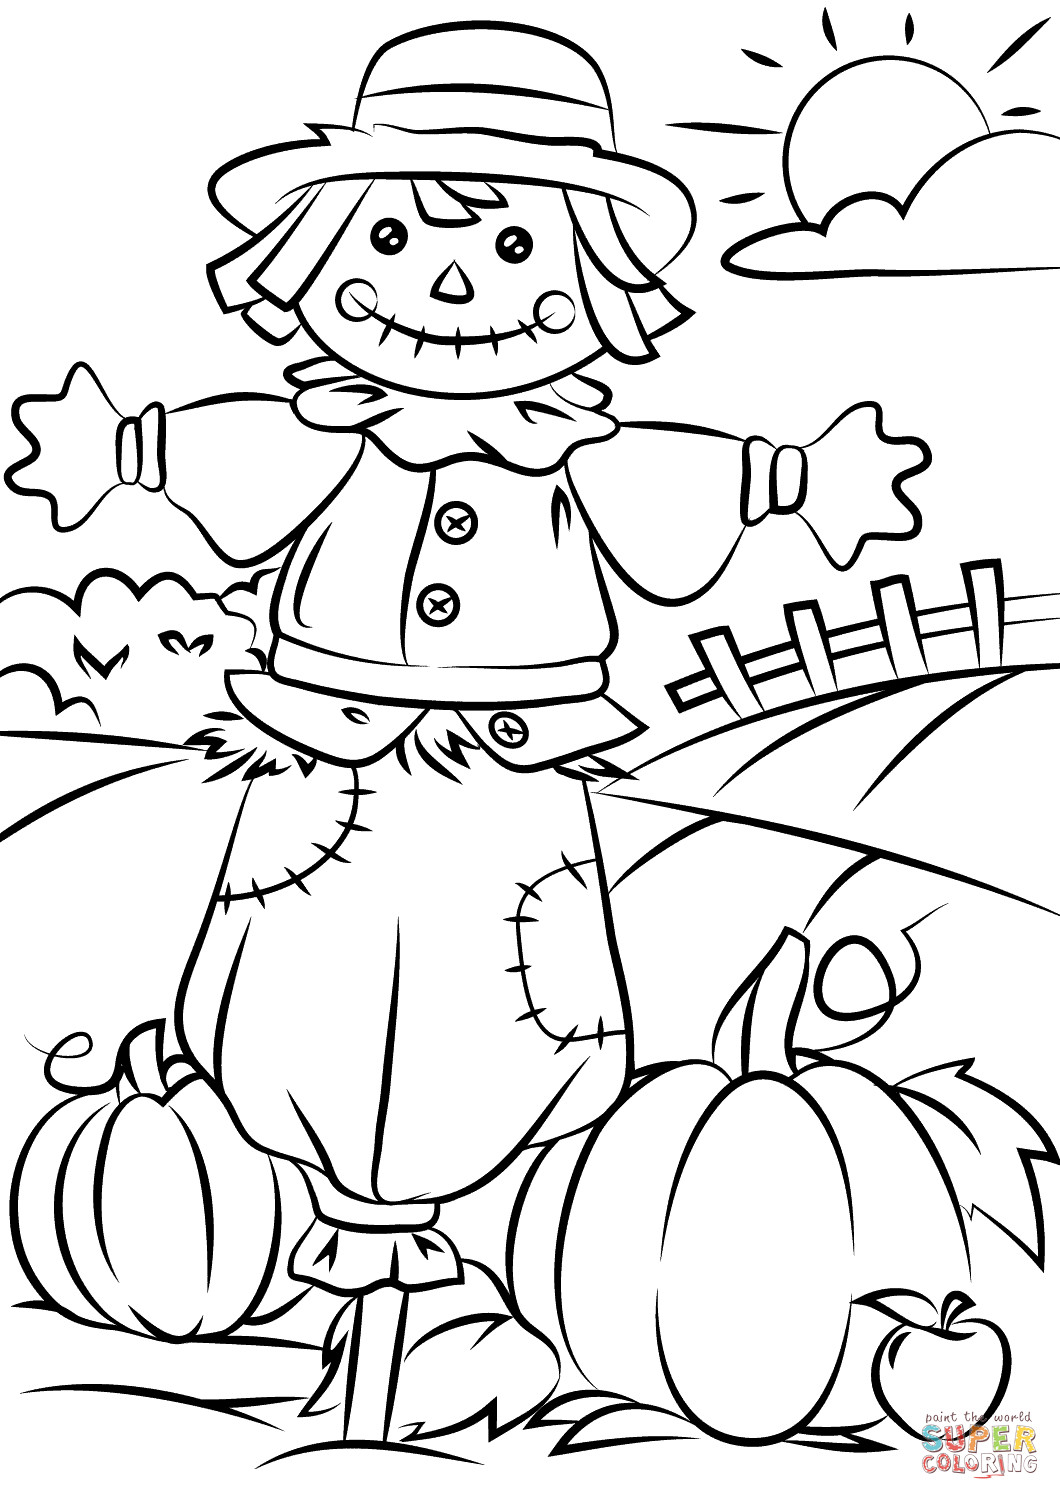 Printable Coloring Sheets For Fall  Autumn Scene with Scarecrow coloring page